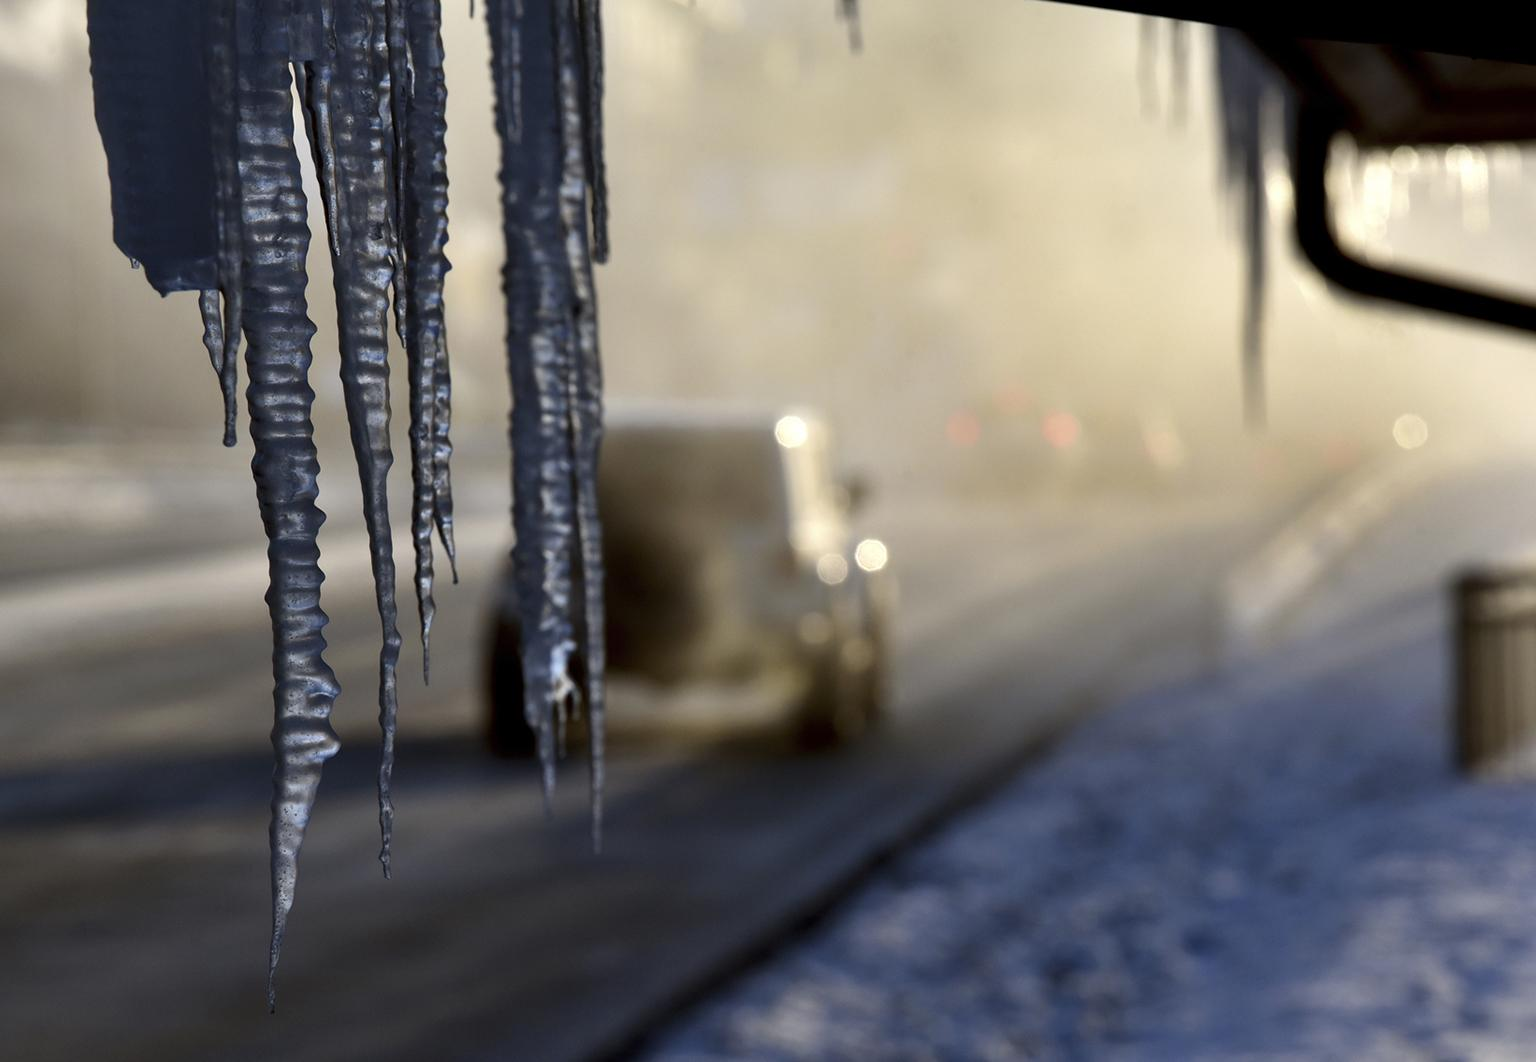 Icicles hang from the Harrington Inn in Geneva, Ill., as commuters pass by on Thursday, Jan. 31, 2019. (Jeff Knox / Daily Herald via AP)